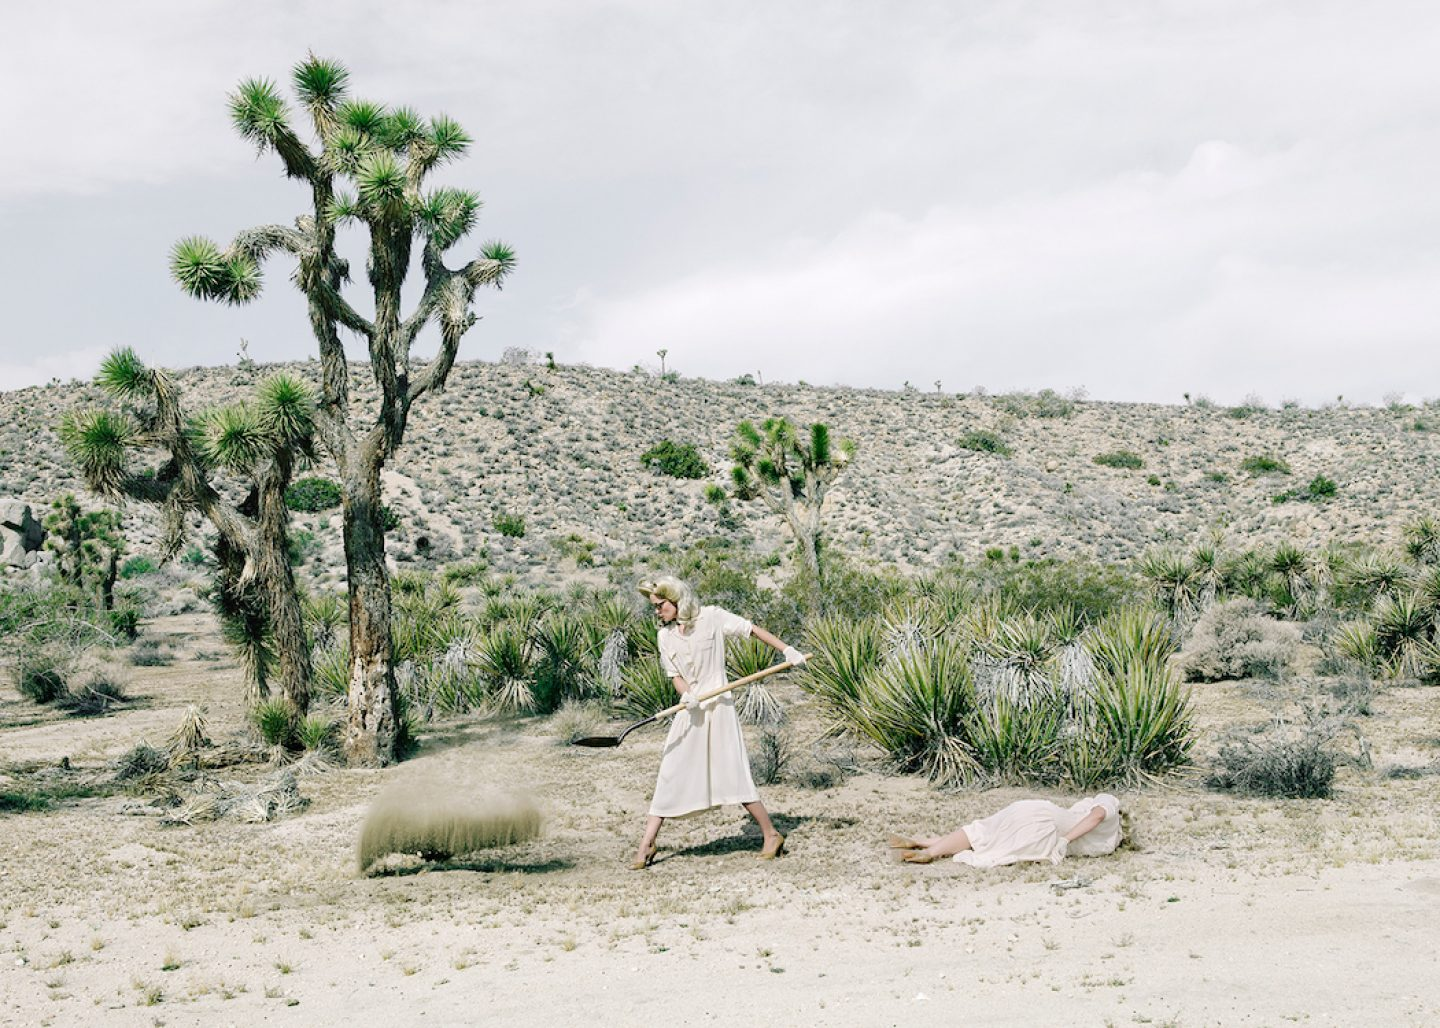 anjaniemi_photography-The Desert © Anja Niemi